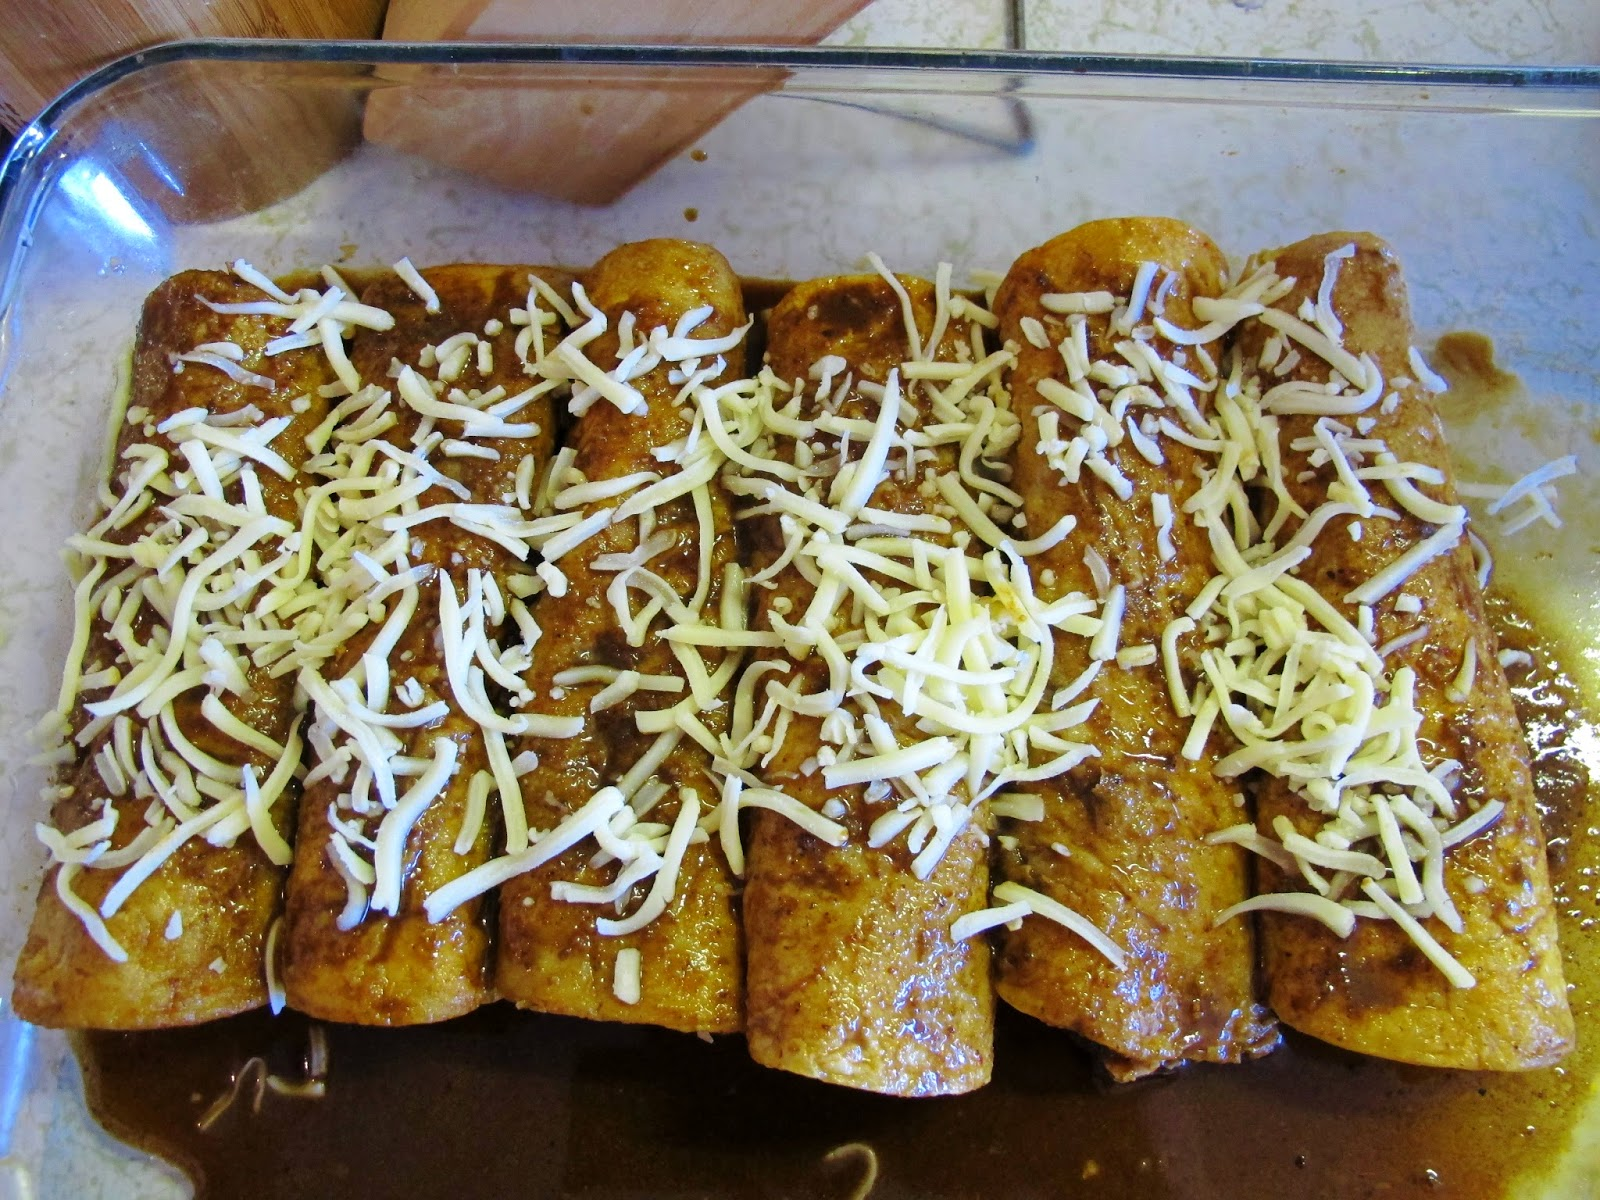 ... Mole sauce for the end and top the already baked enchiladas with it